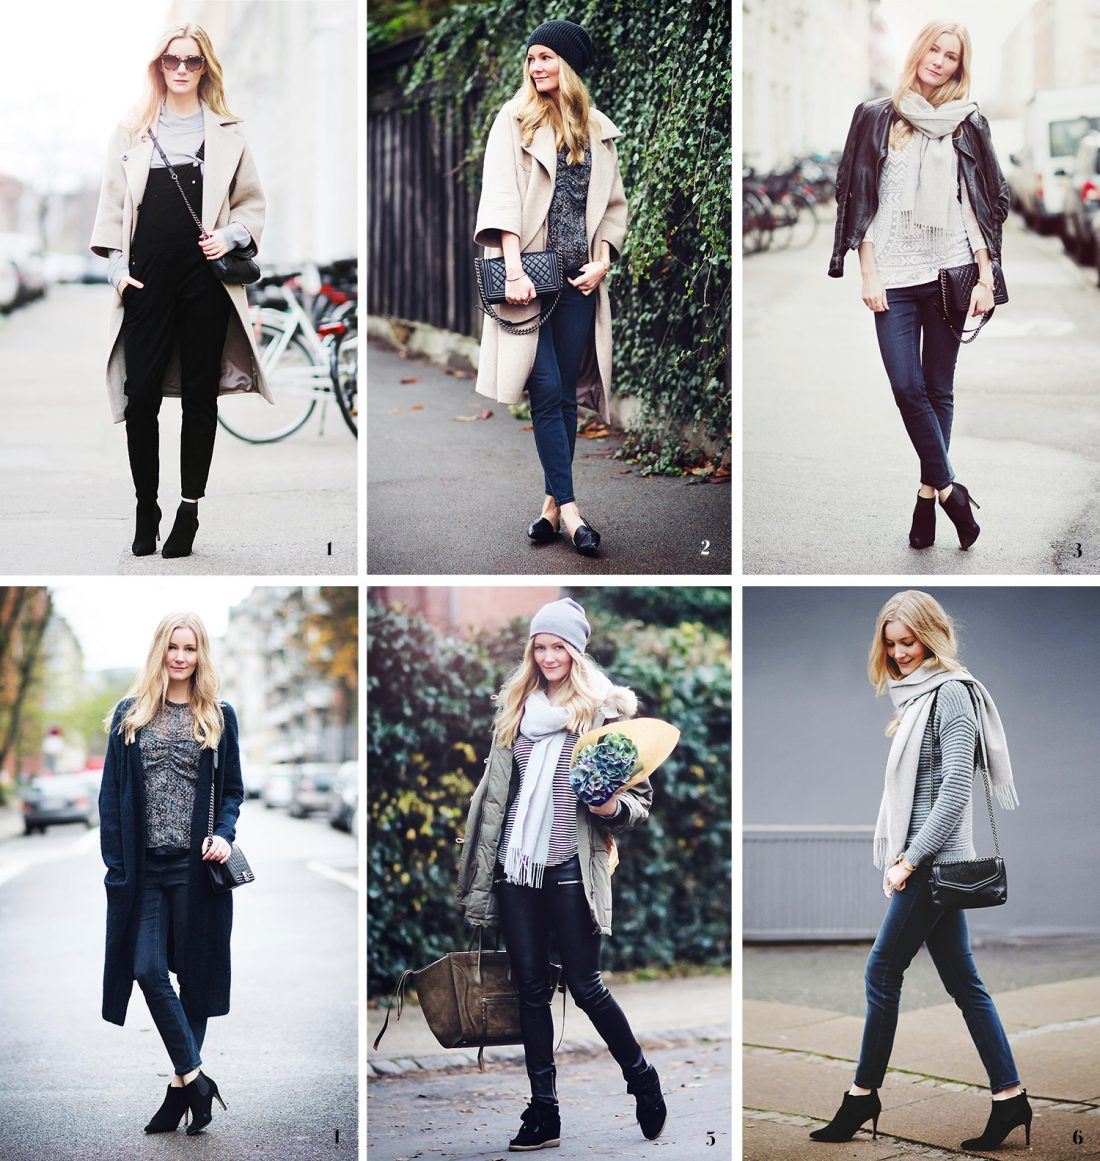 outfits-modeblog@2x.jpg